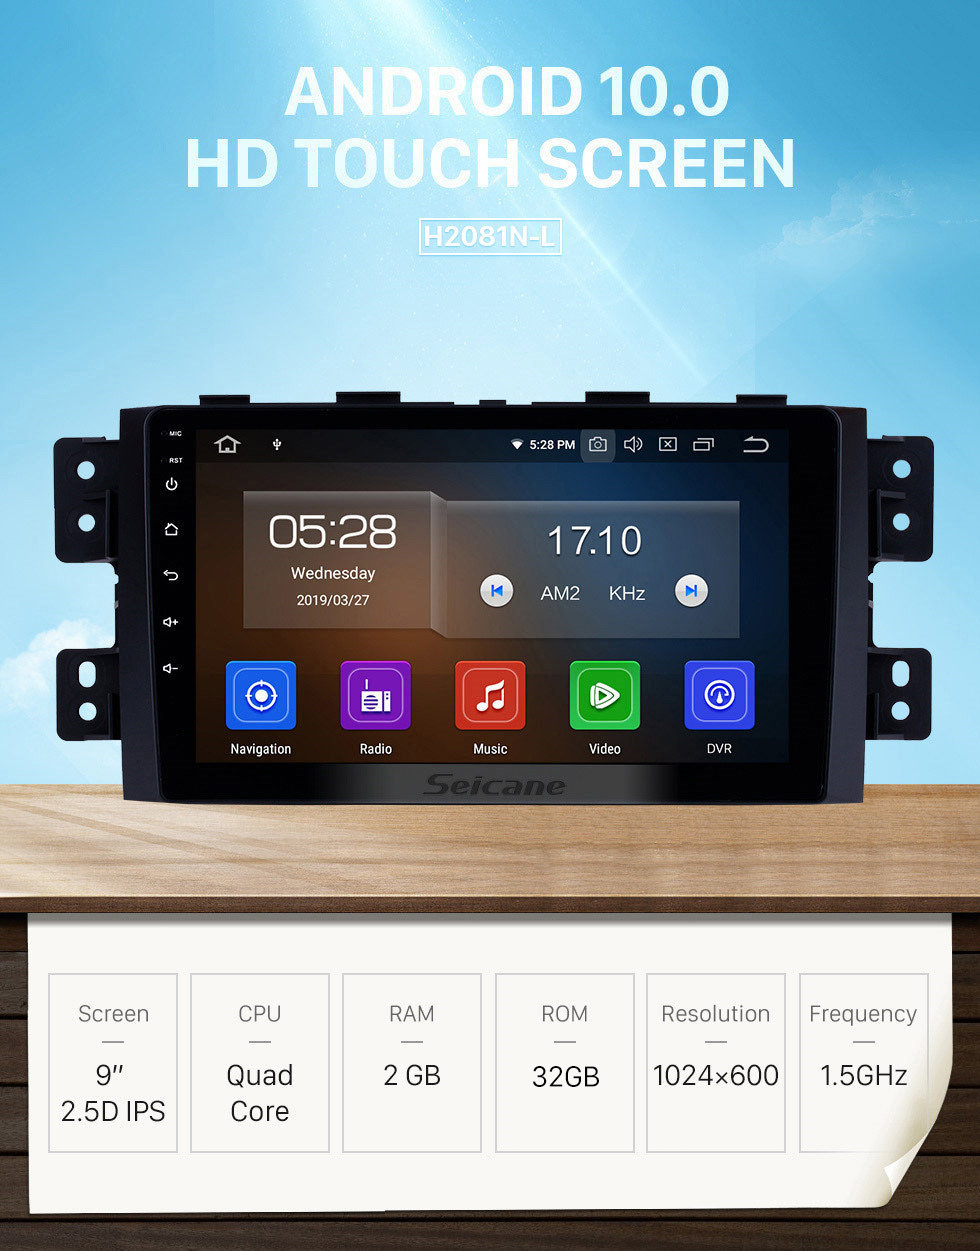 Seicane 9 inch aftermarket Android 10.0 HD Touchscreen GPS Navigation System Radio For 2008-2016 Kia Borrego with USB SupportDVR OBD II 3G/4G WIFI Steering Wheel Control